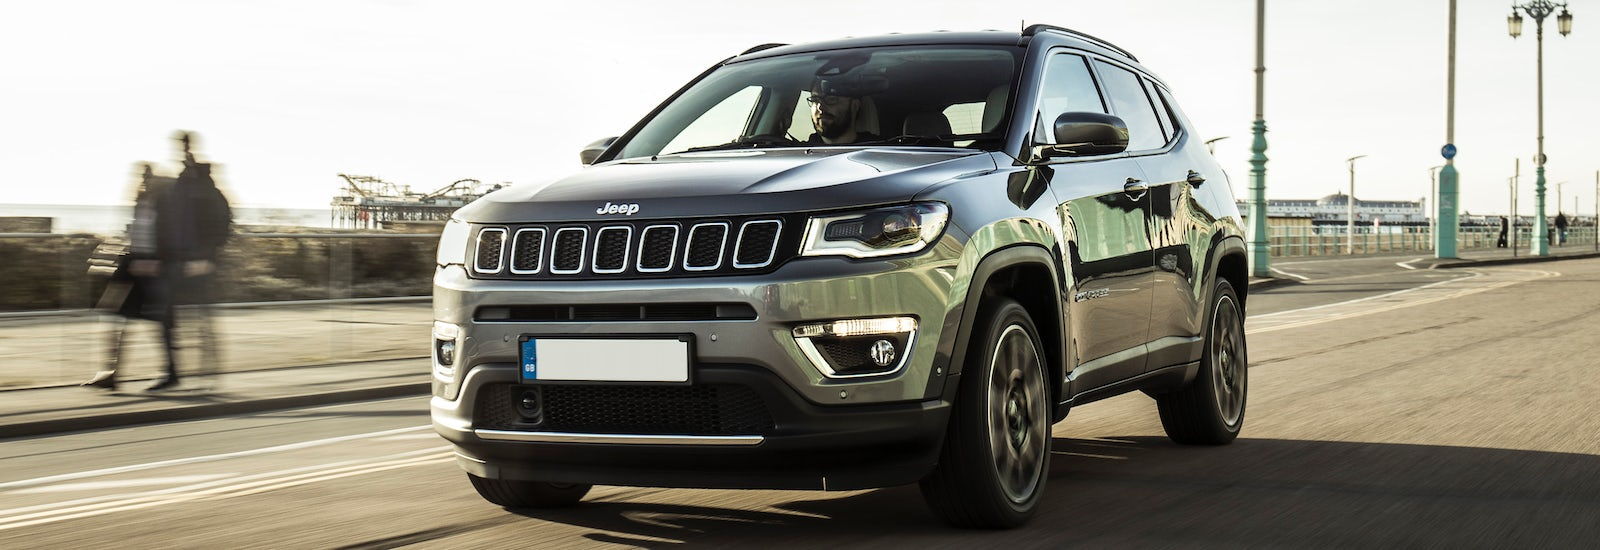 2018 jeep compass price specs and release date carwow. Black Bedroom Furniture Sets. Home Design Ideas